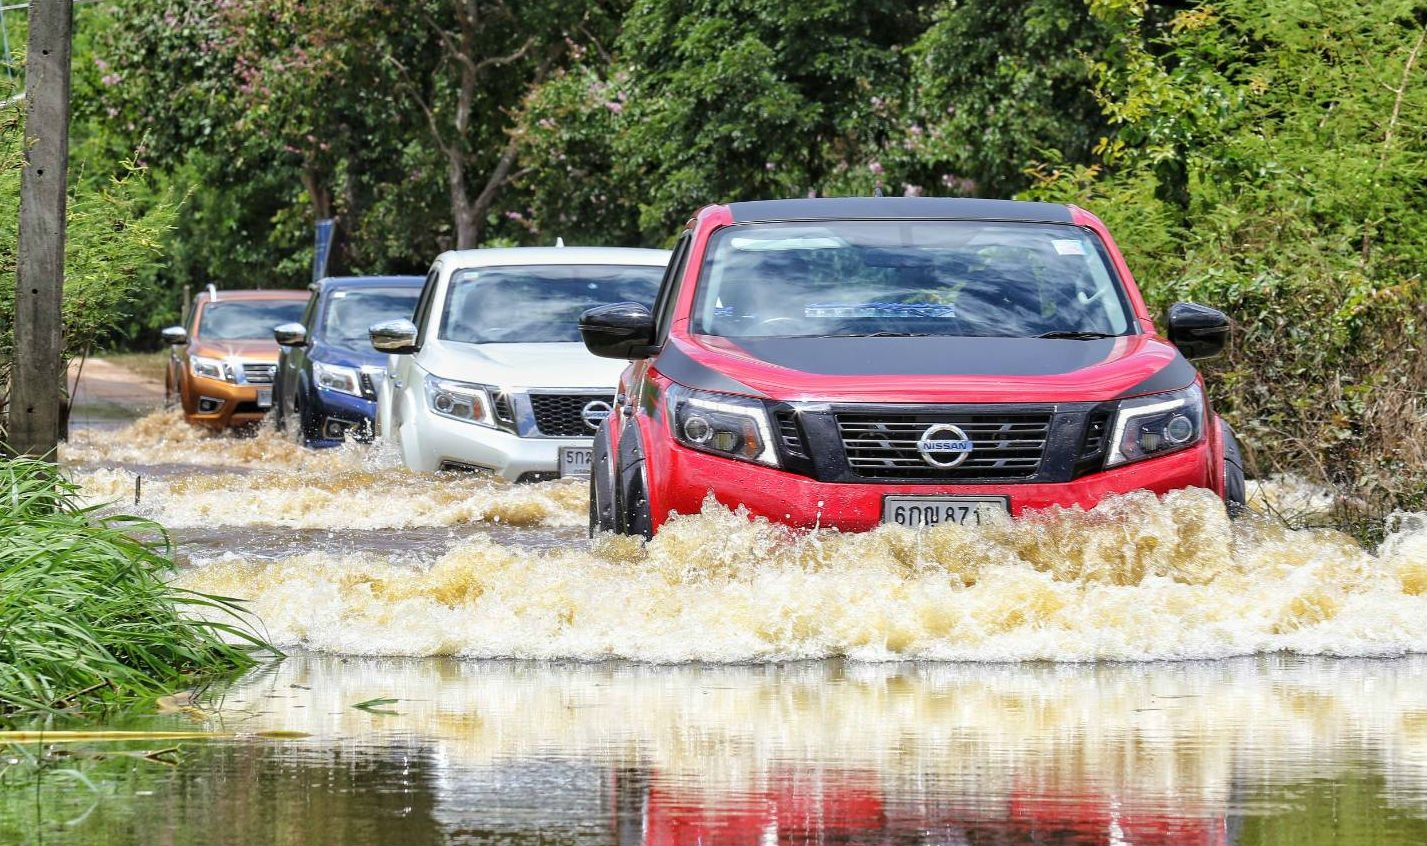 The Nissan Motor Thailand team, led by Mr. Chayapak Laisuwan, General Manager, Product Communications, and members of the media drove Nissan Navara pickups, including the Black Edition and Sportech Edition, all heavily packed with water and donated items.